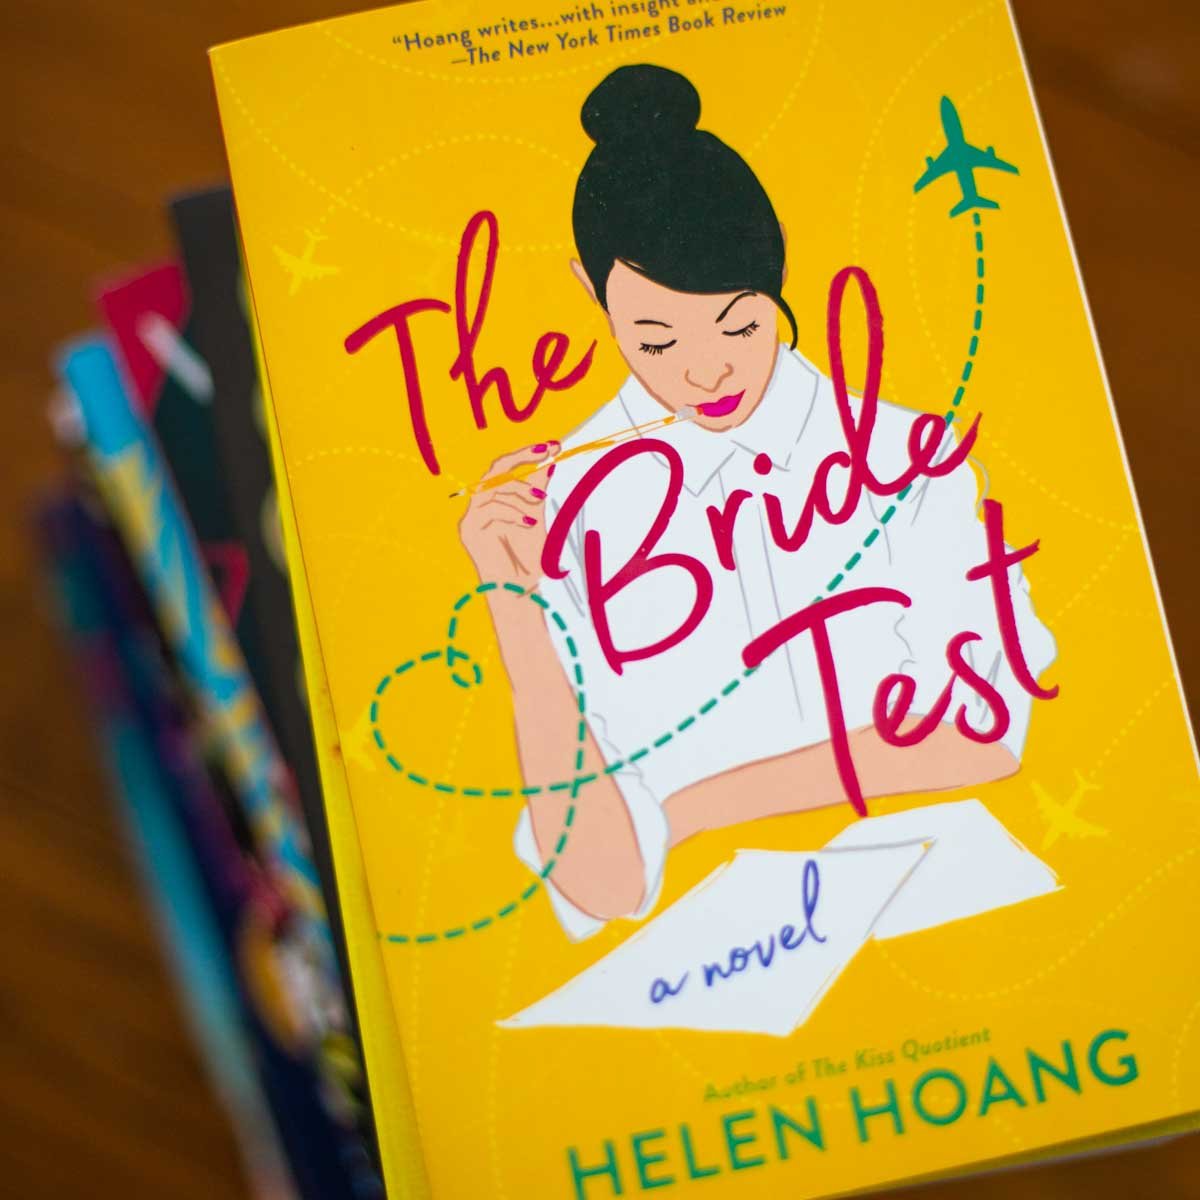 The copy of The Bride Test by Helen Hoang sits on a pile of books.